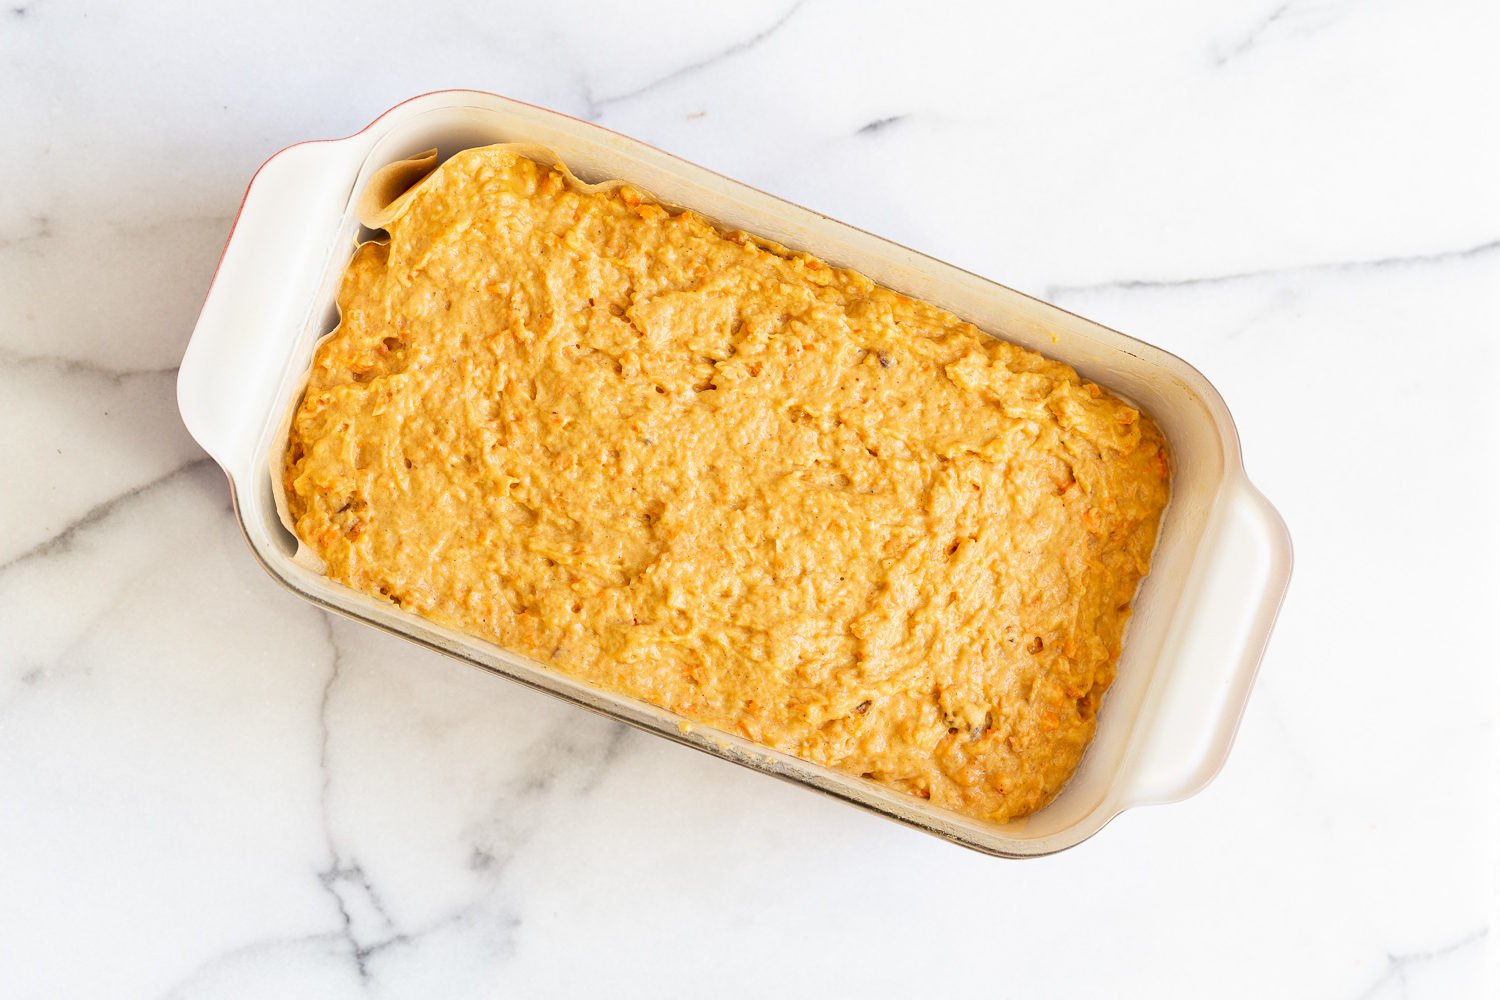 vegan pumpkin carrot cake batter in a loaf pan ready for baking